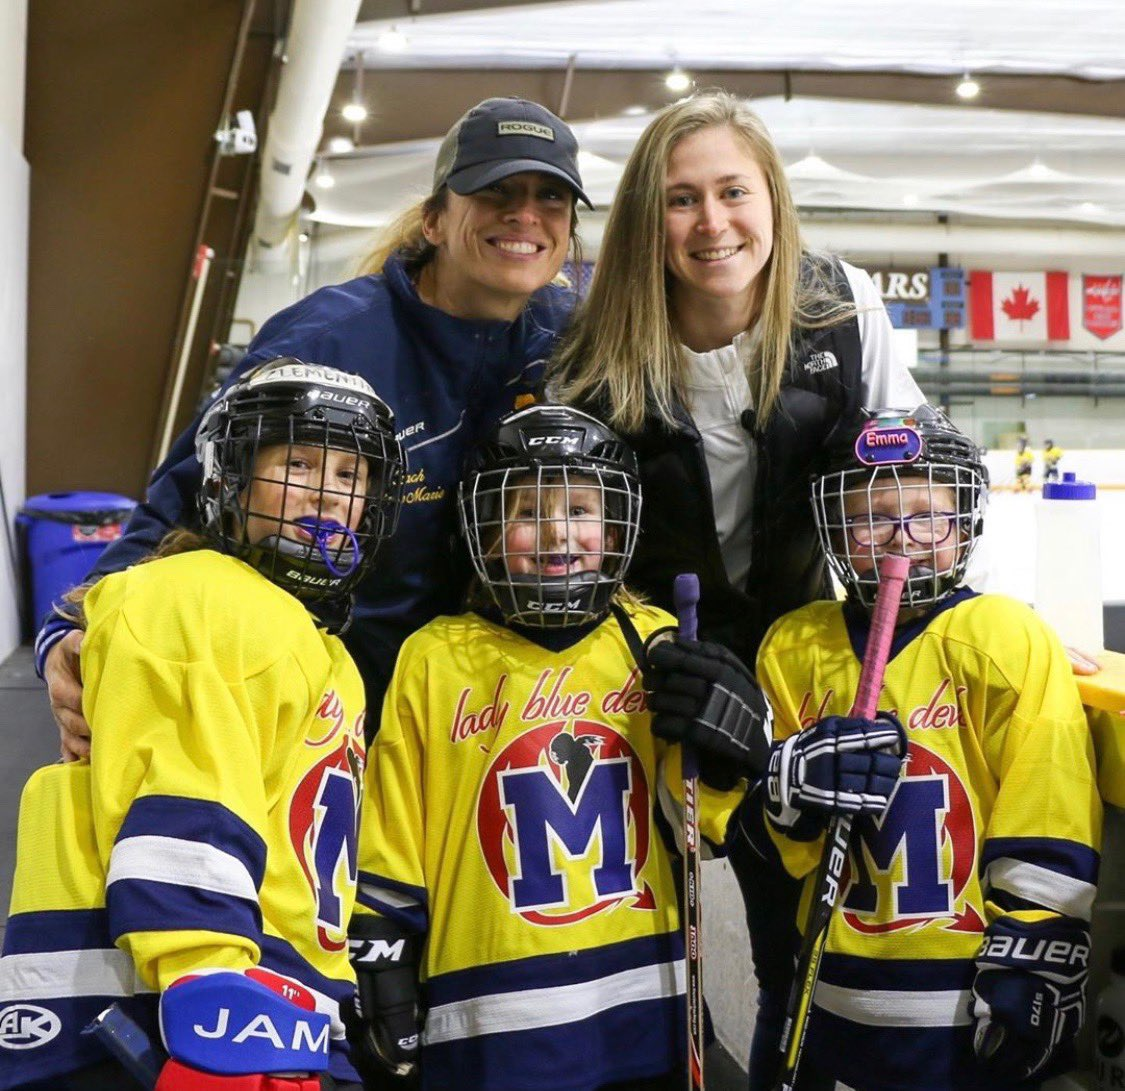 P(L)AYING it forward 🏒 Our @Capitals Hockey Ambassador @skrooops28 visited her former MYHA team for their 8U Girls' Jamboree at @RockvilleIce yesterday! #ALLCAPS #GirlsHockey